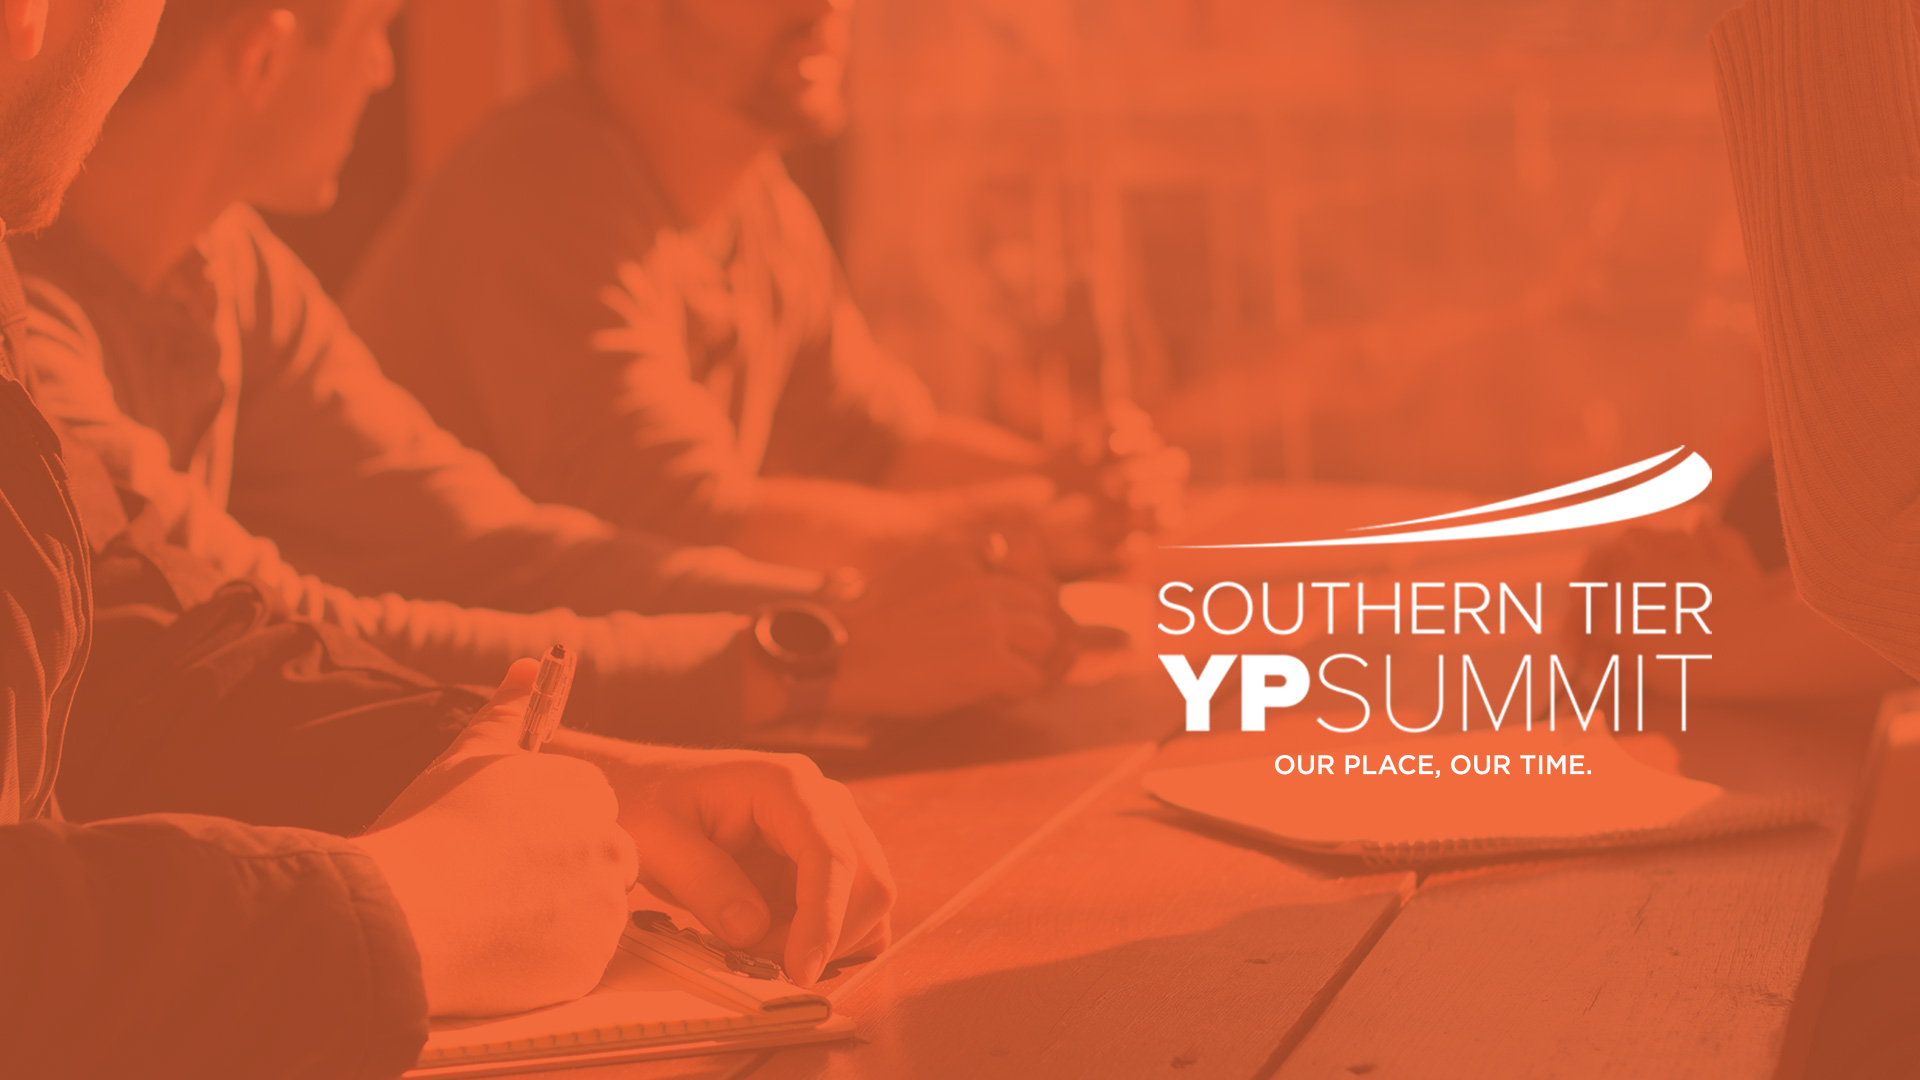 SOUTHERN TIER YP SUMMIT